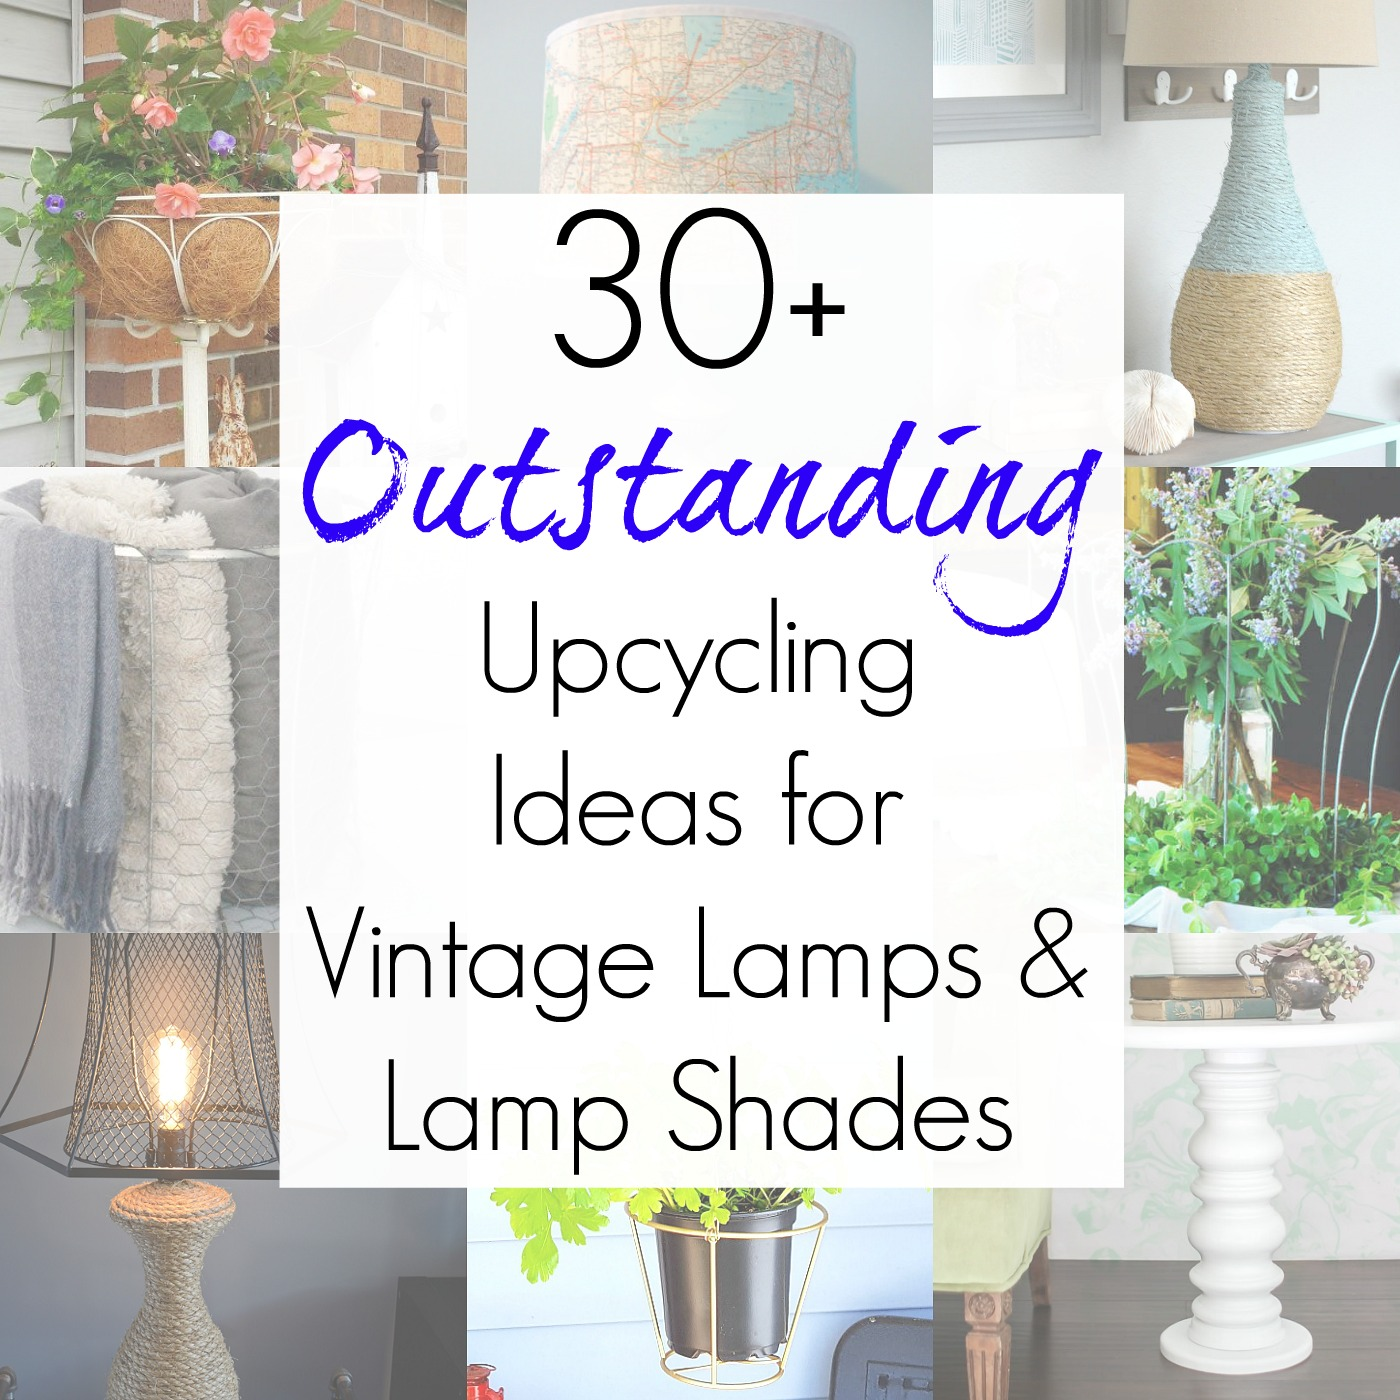 30+ Upcycling Ideas for Vintage Lamps and Lamp Shades